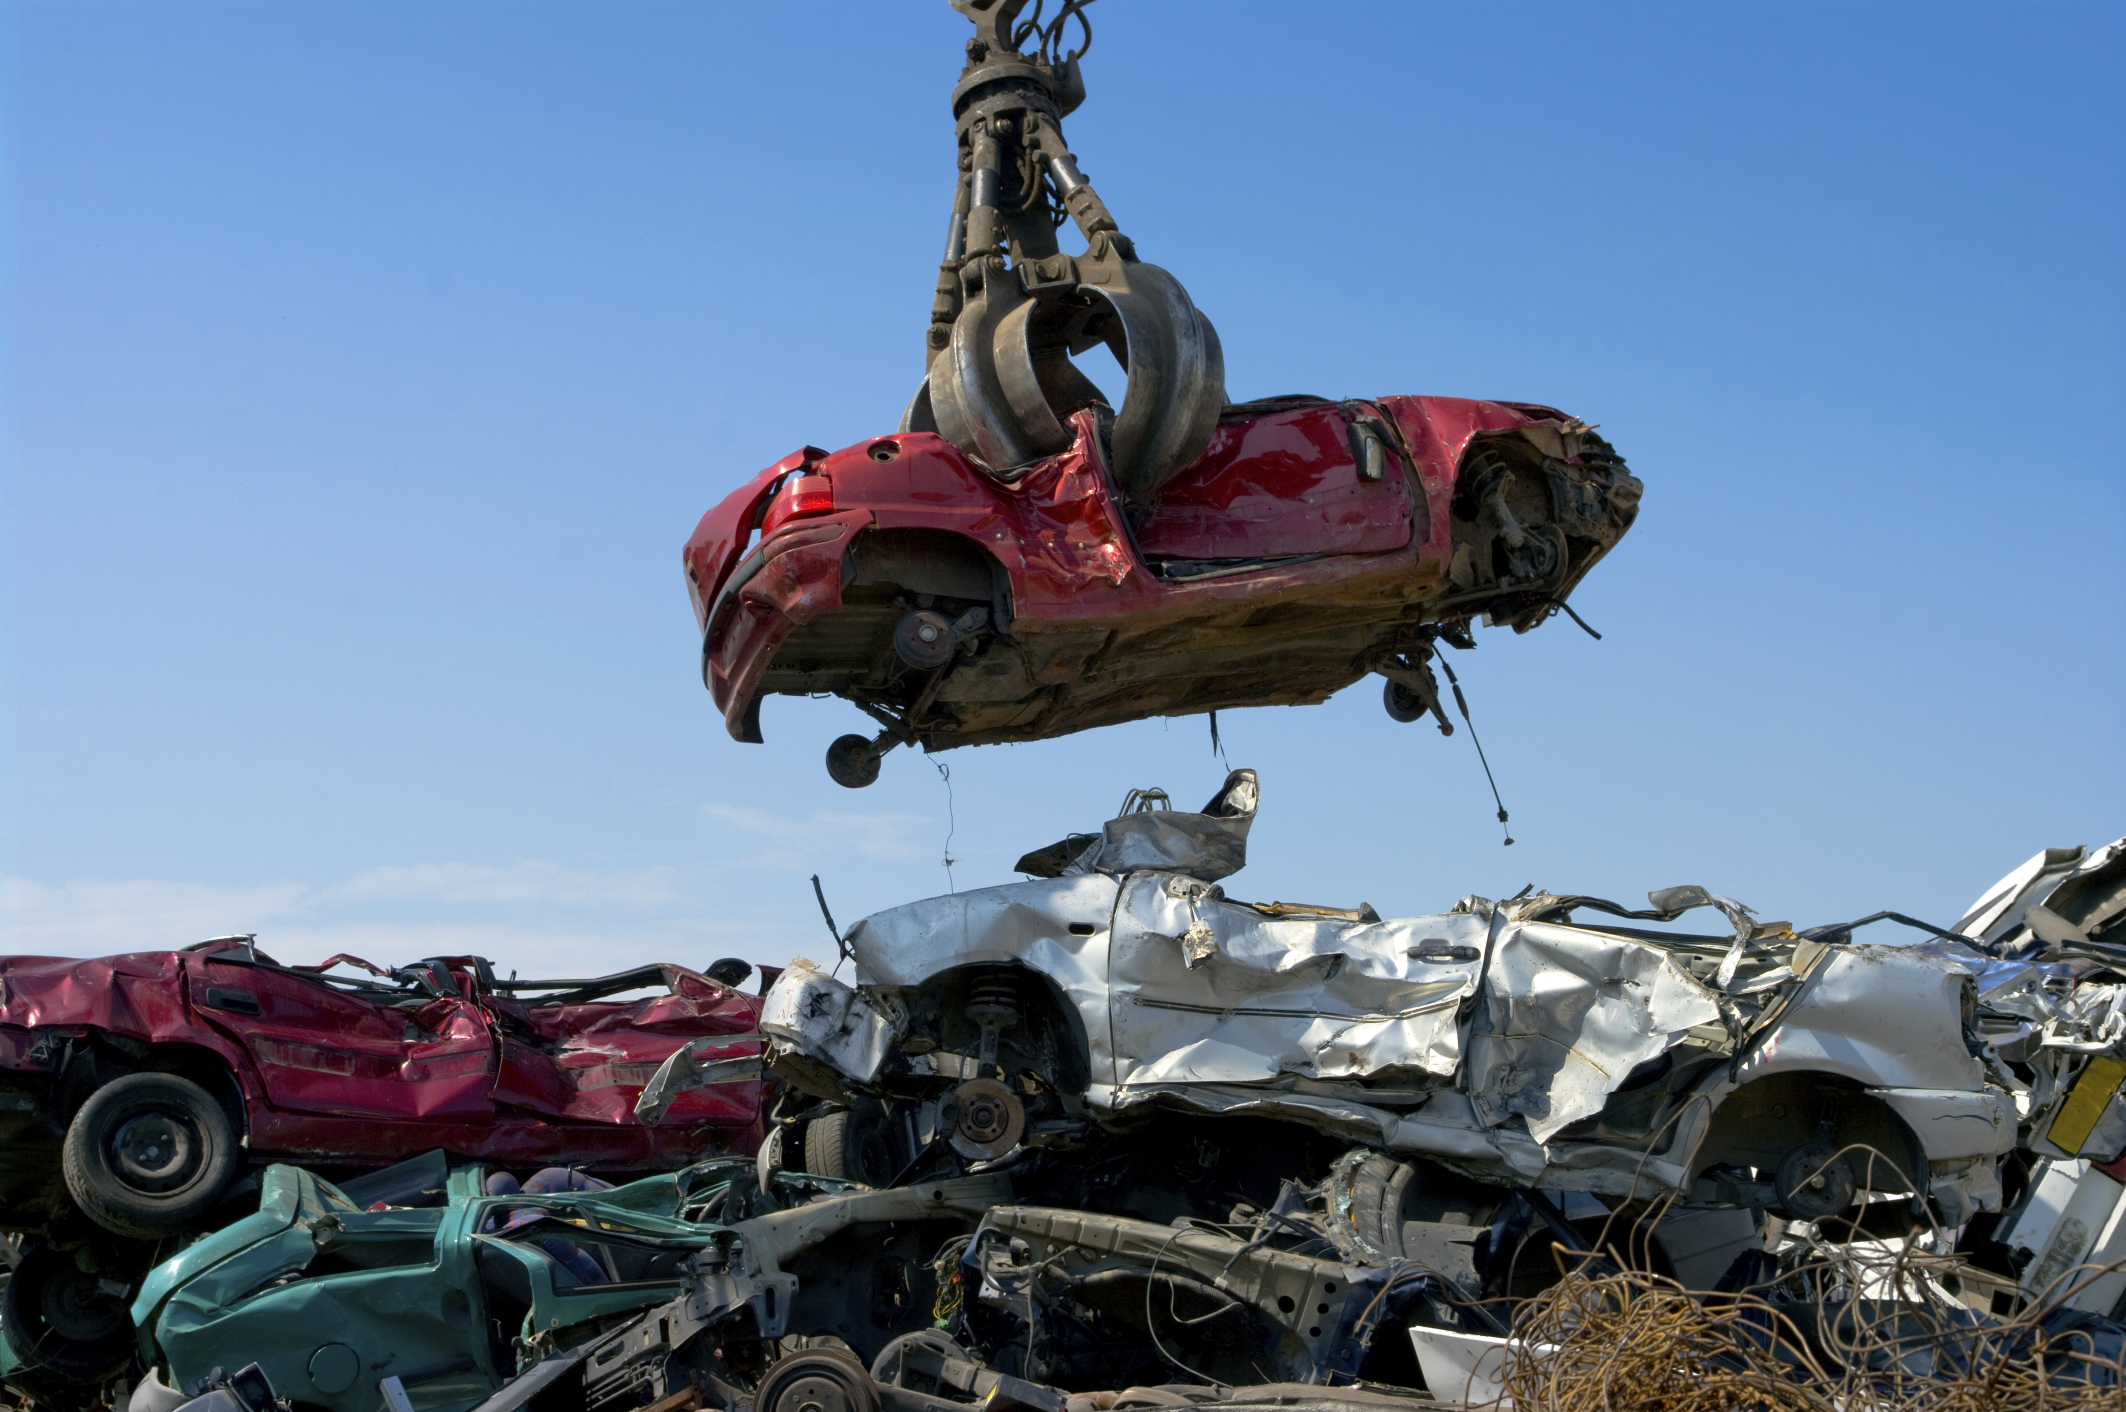 PRICE OF METAL ON JUNK CARS RISES